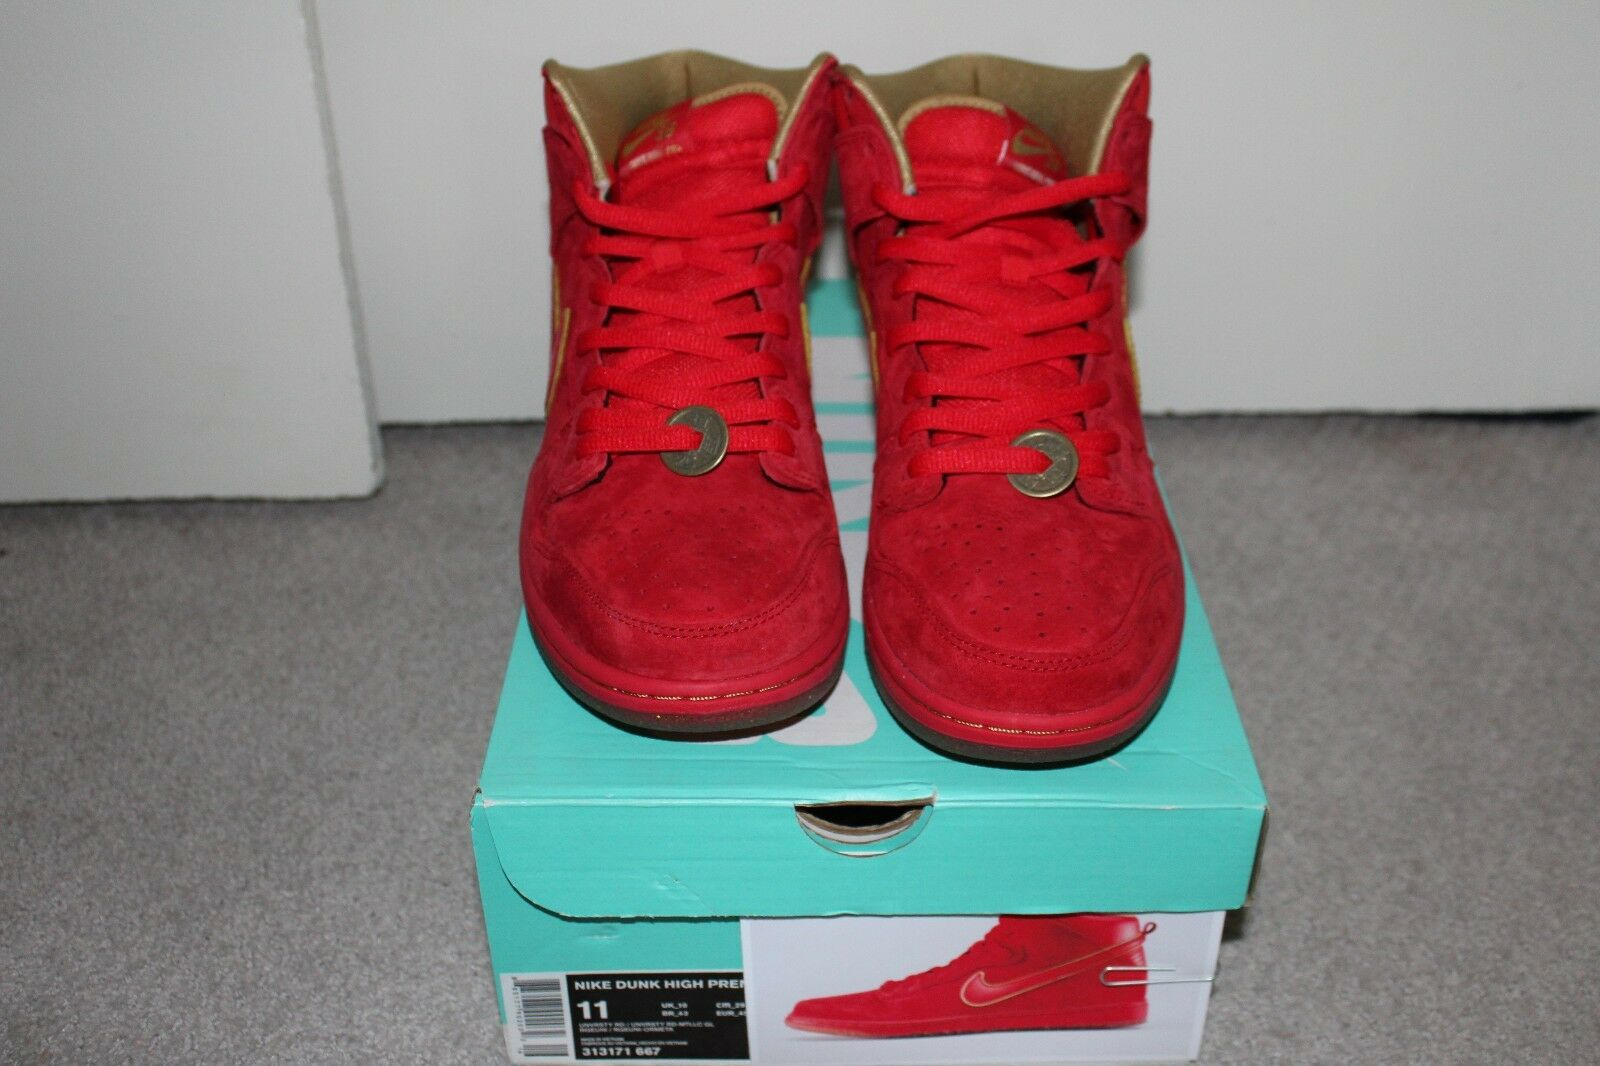 Nike Dunk High Premium SB YOTH Size 11 Deadstock DS Year of the horse